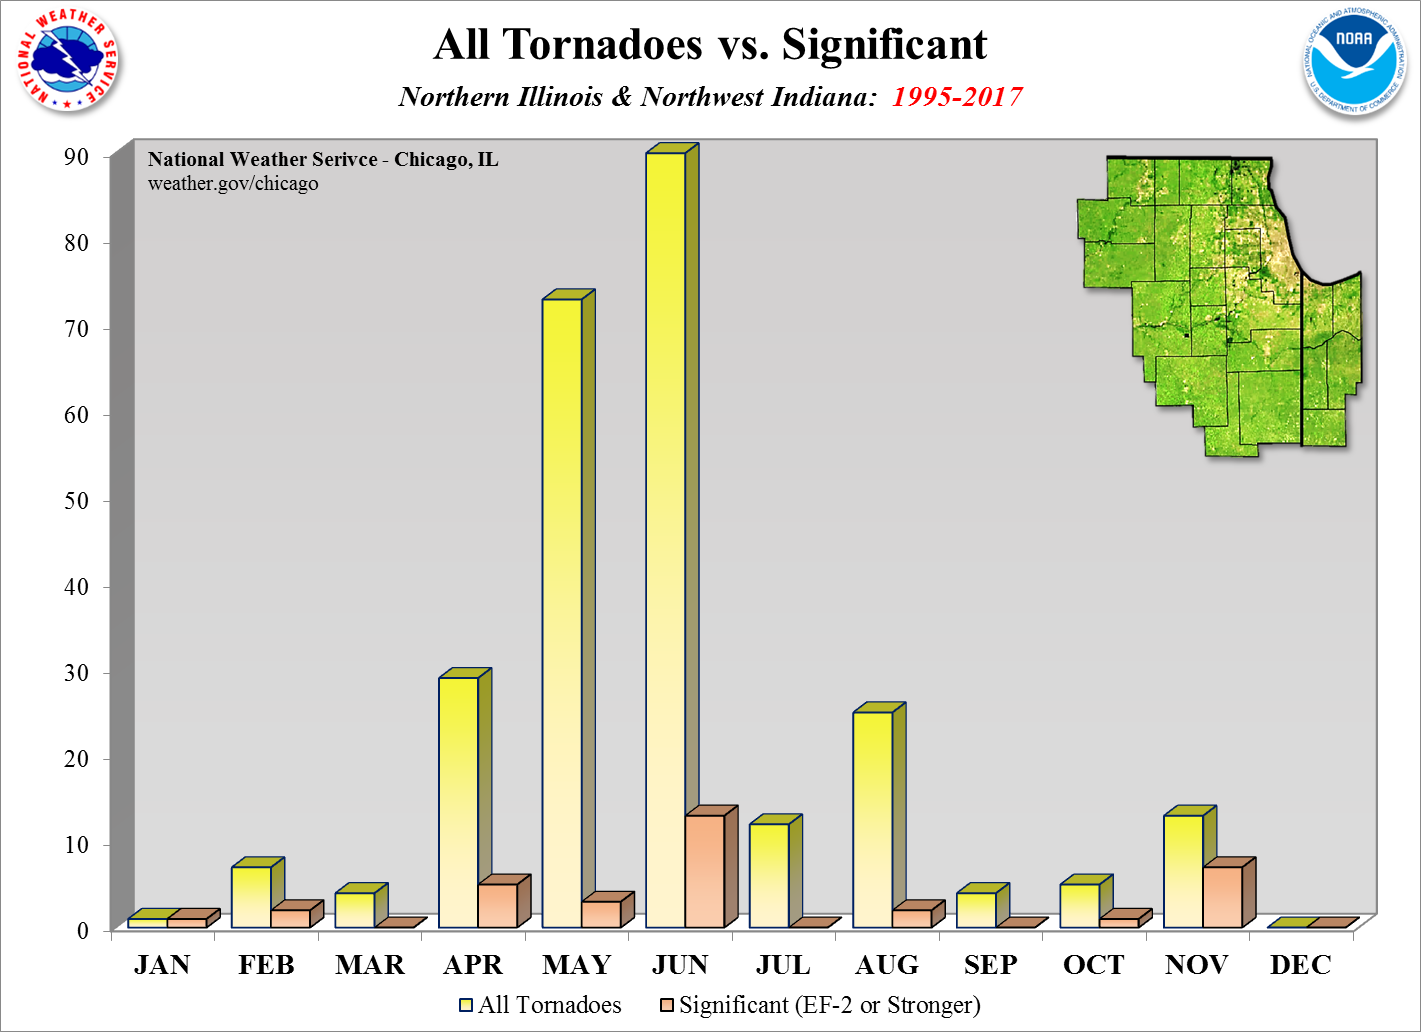 Tornadoes & Significant by Time of Year